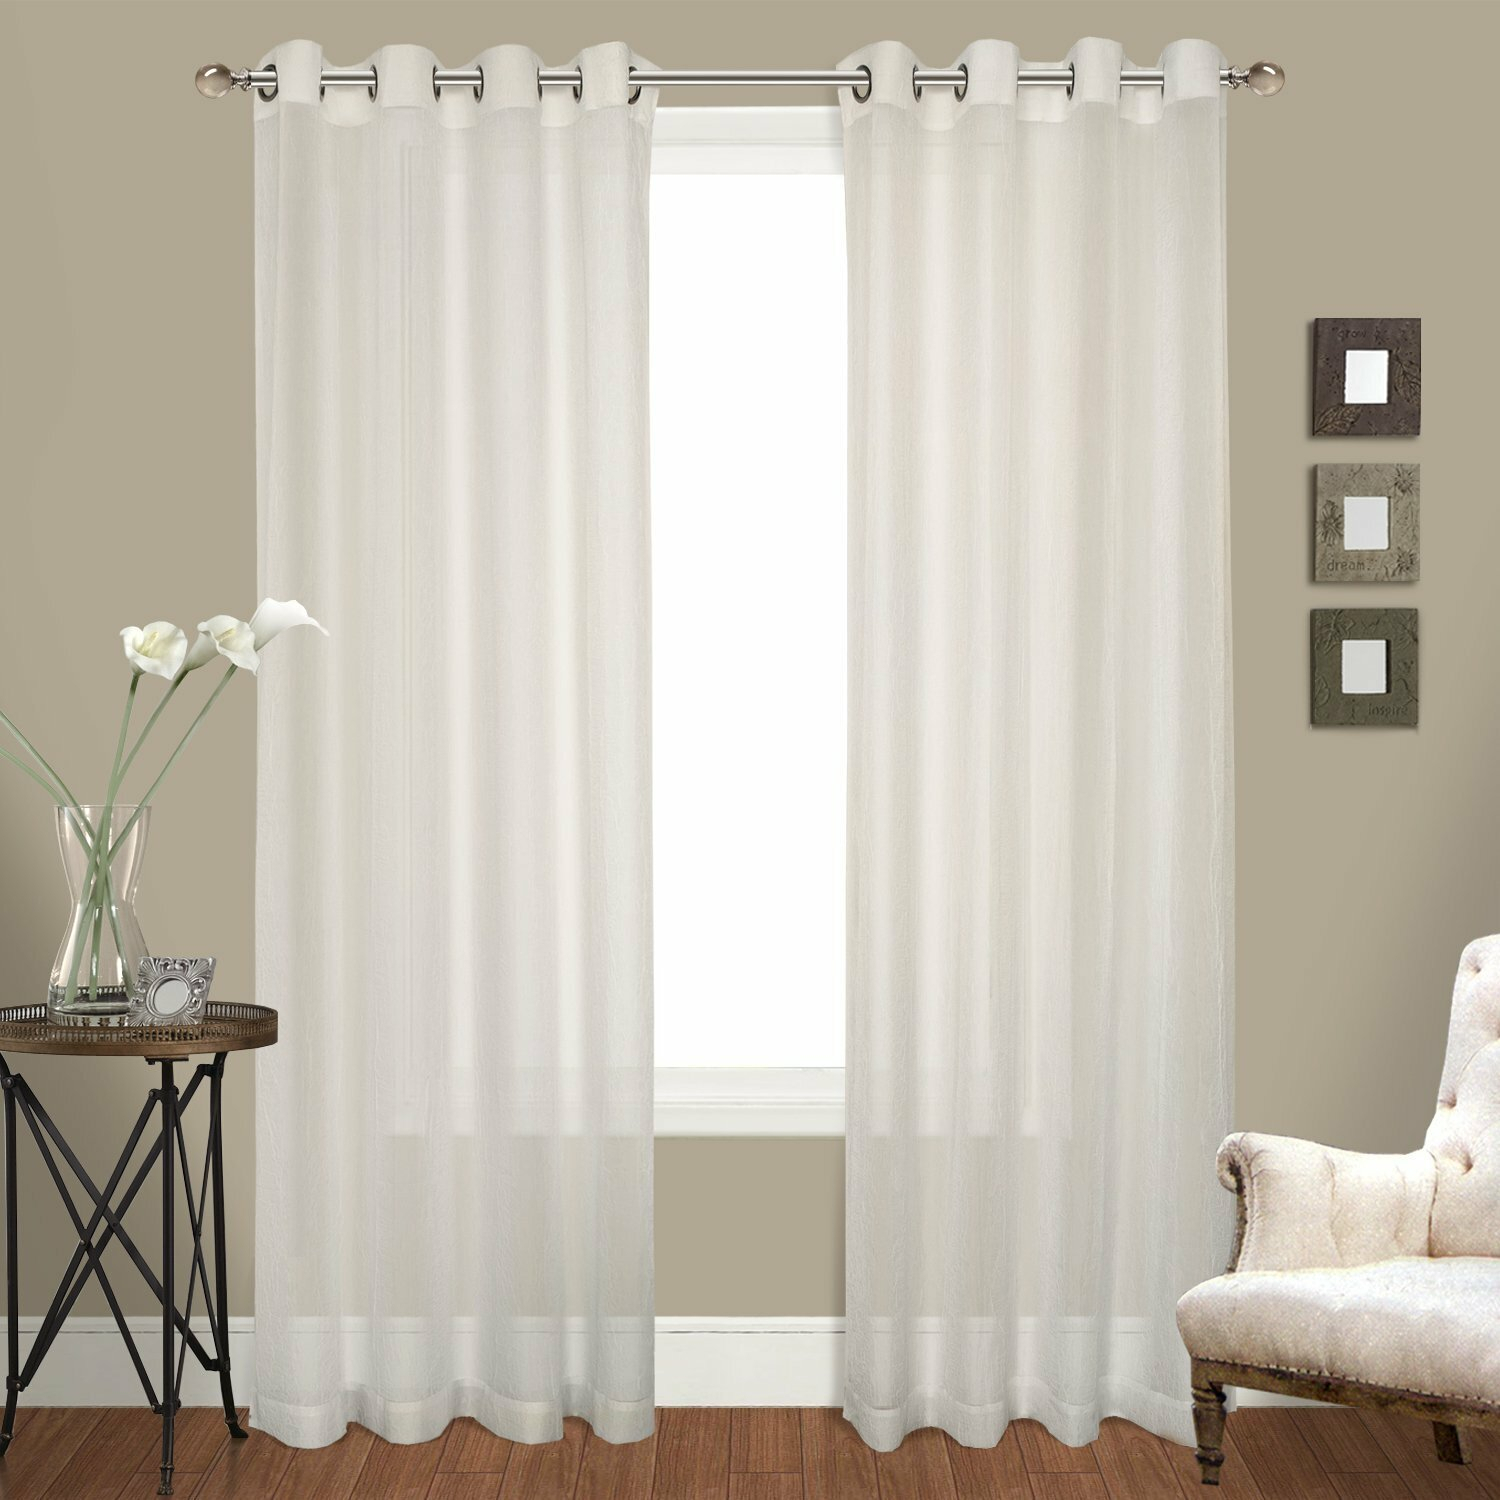 Ortley Crushed Voile Solid Sheer Grommet Curtain Panel Pair In Pairs To Go Victoria Voile Curtain Panel Pairs (View 15 of 20)